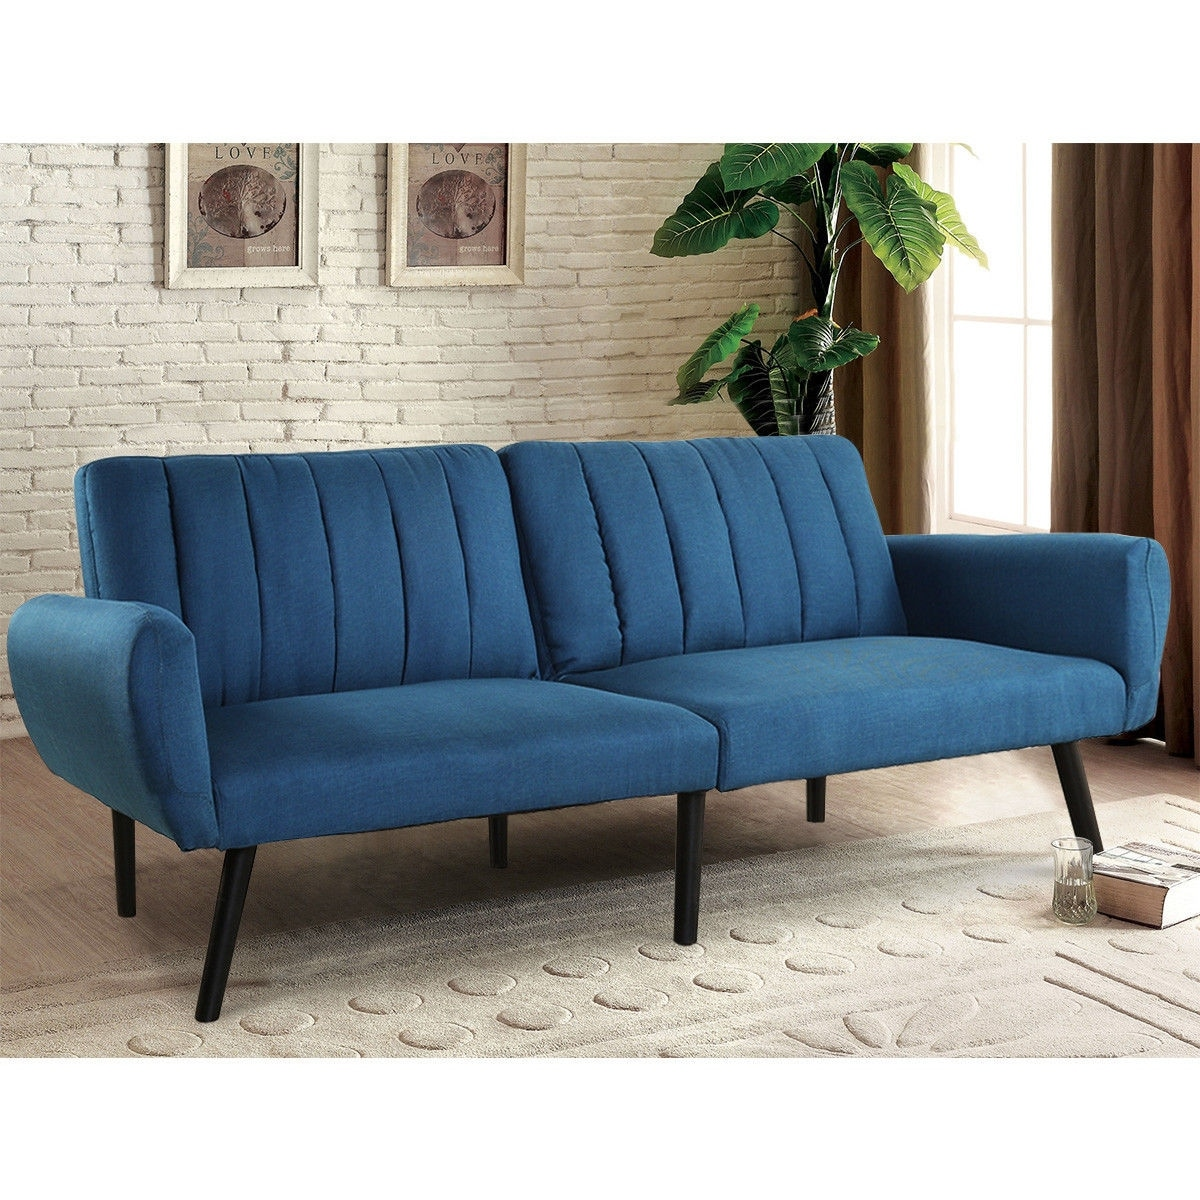 Costway Sofa Futon Bed Sleeper Couch Convertible Mattress Premium Linen Upholstery Blue On Ships To Canada Ca 20708422